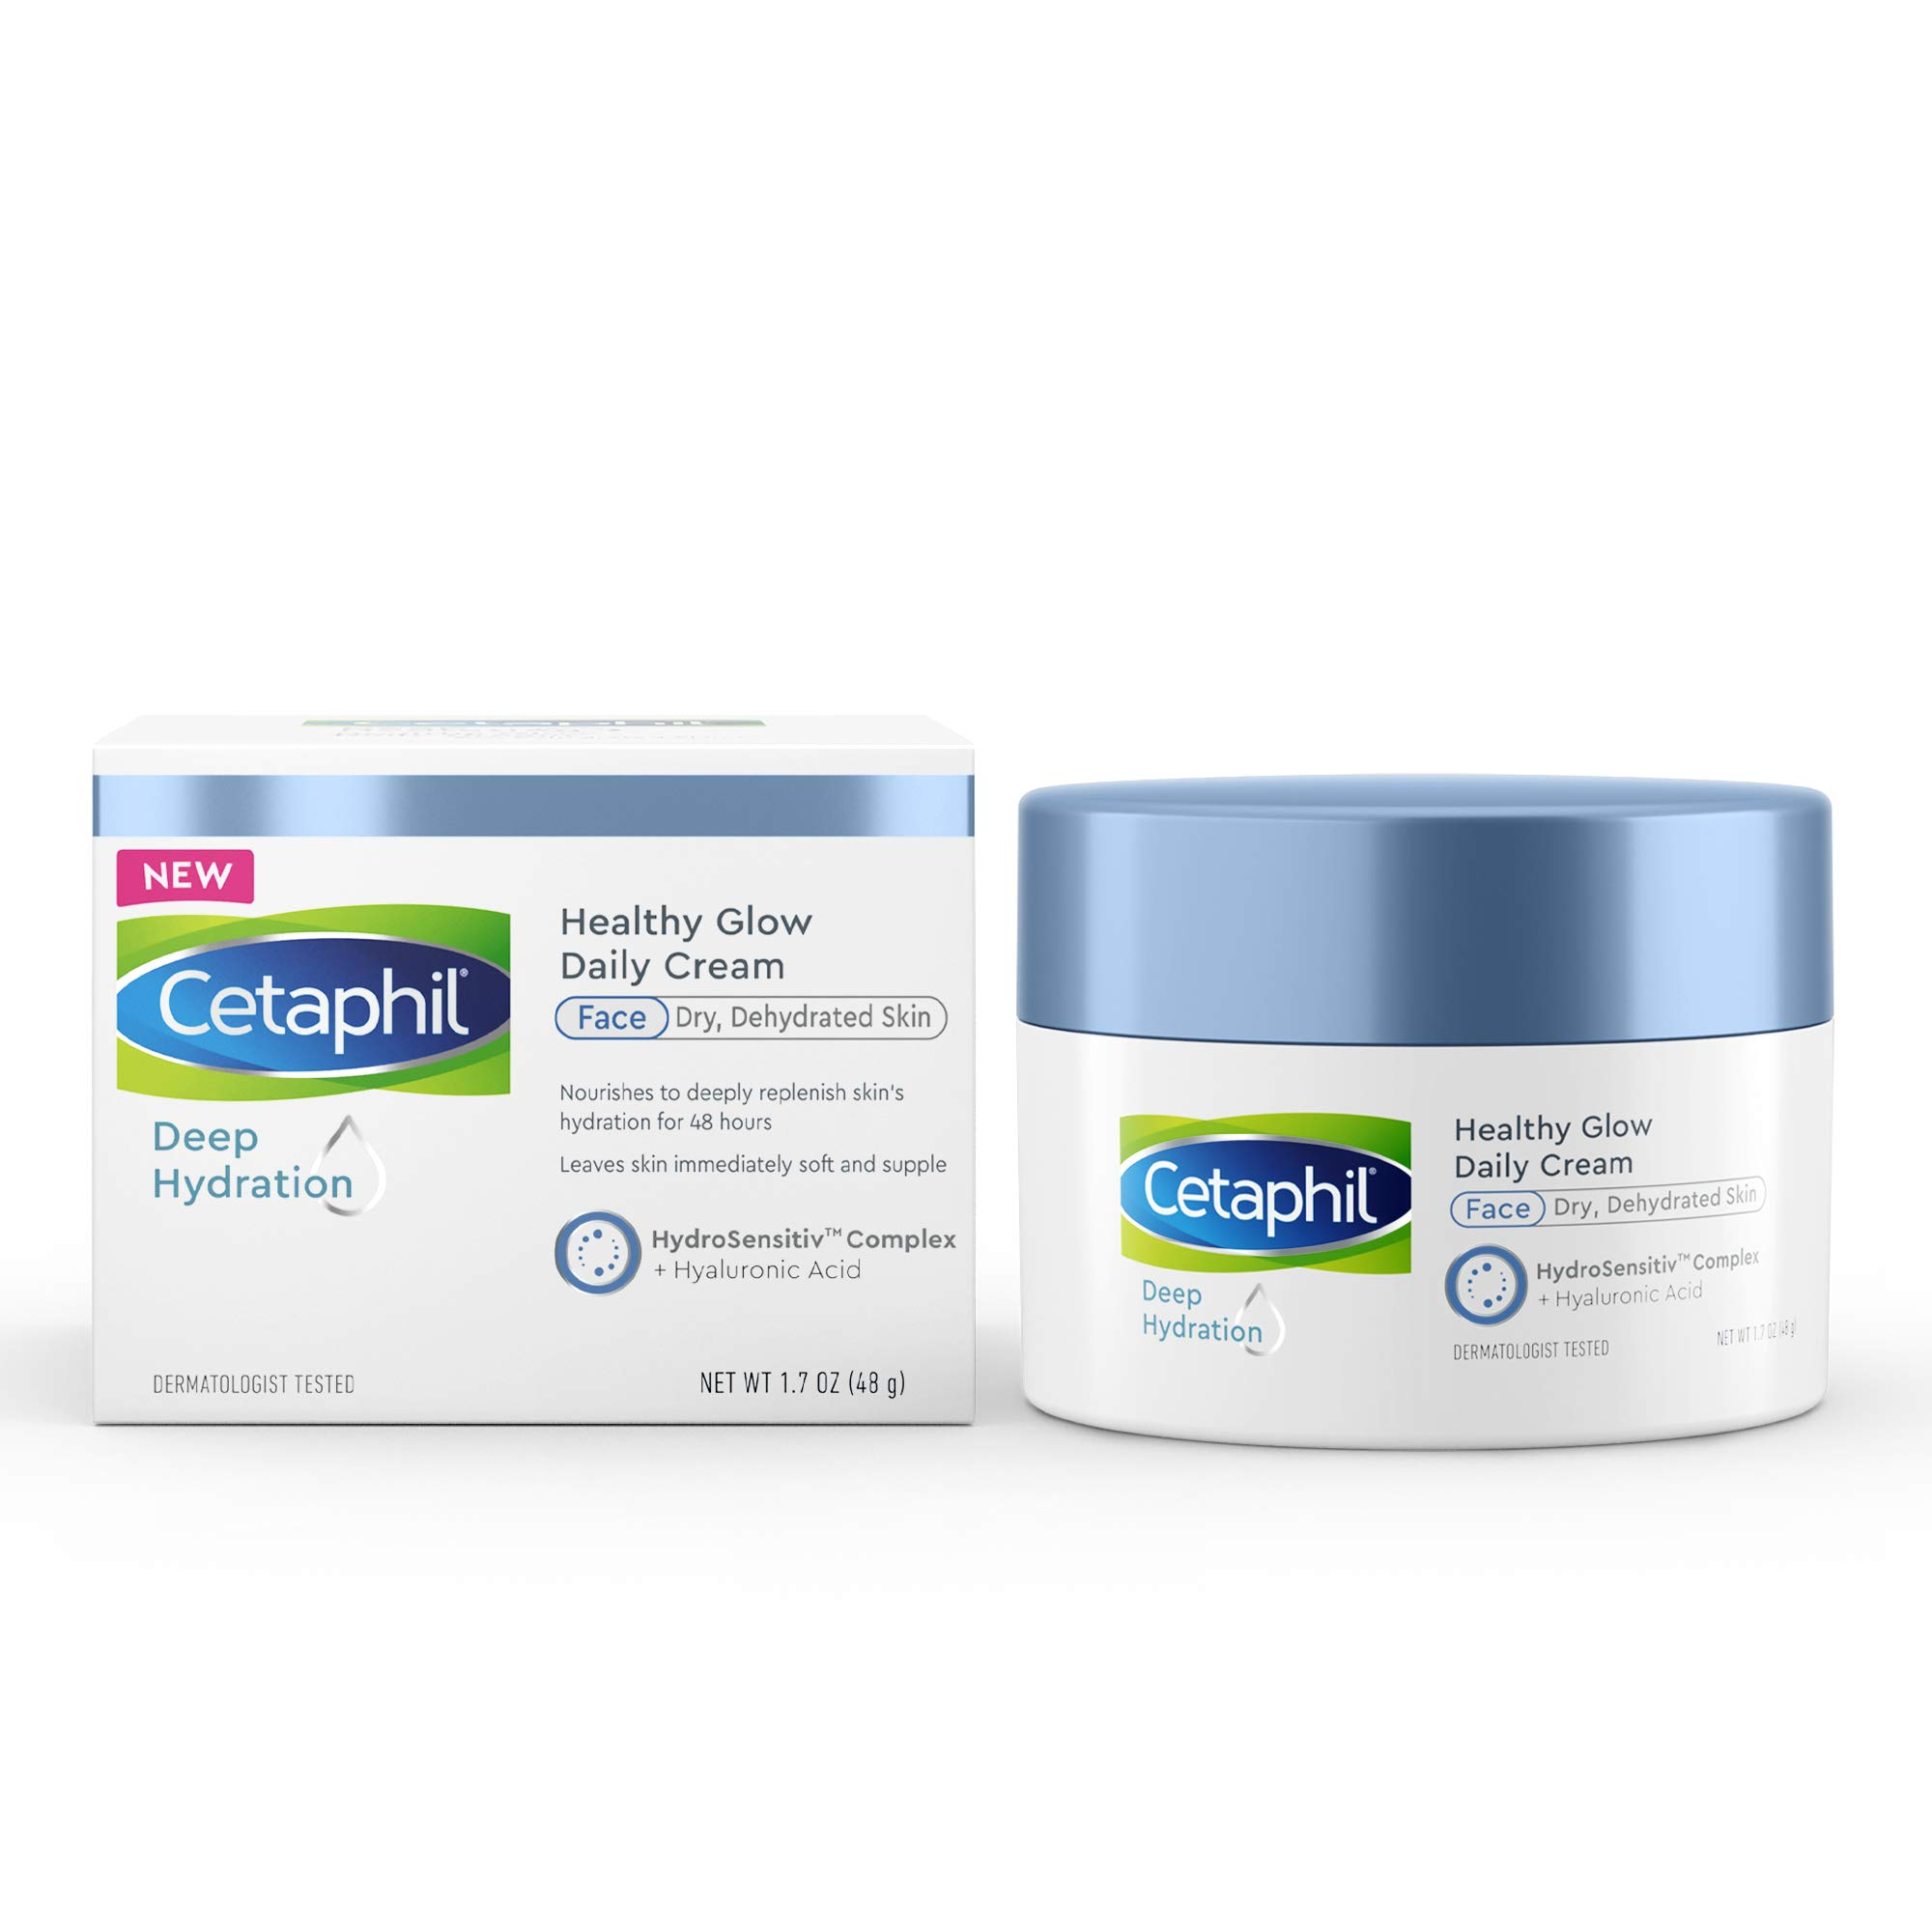 CETAPHIL Deep Hydration Healthy Glow Daily Face Cream   1.7 oz   48 Hour Dry Skin Face Moisturizer for Sensitive Skin   With Hyaluronic Acid, Vitamin E & Vitamin B5   Dermatologist Recommended